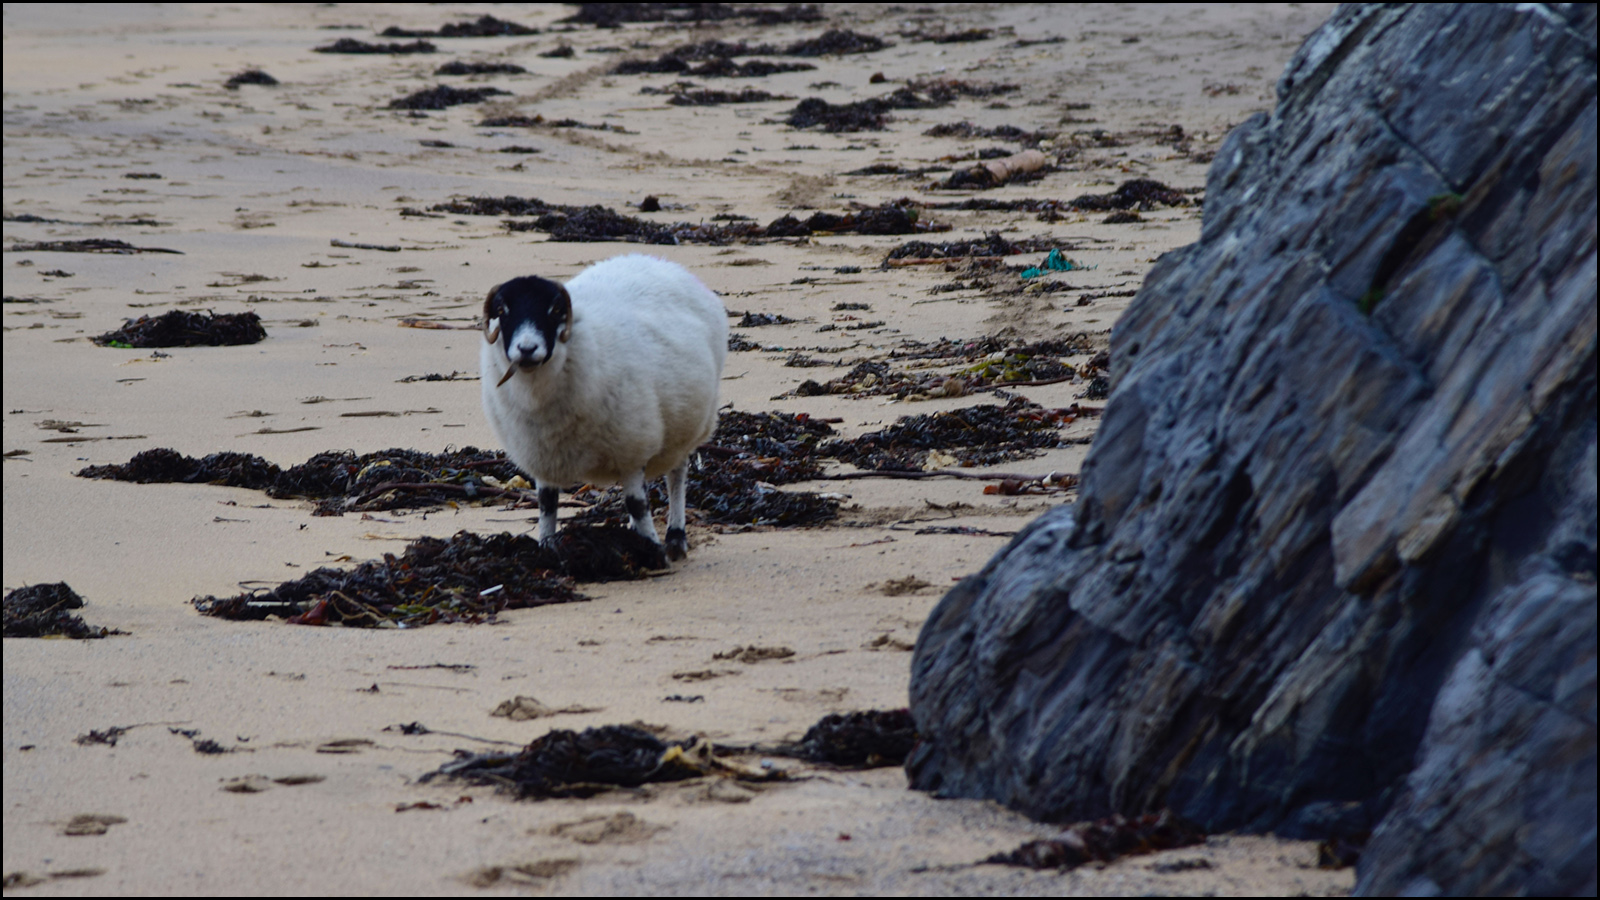 didn't have an octoups image that wasn't sushi…how abot a goat roaming a beach? (c) mark somple 2019